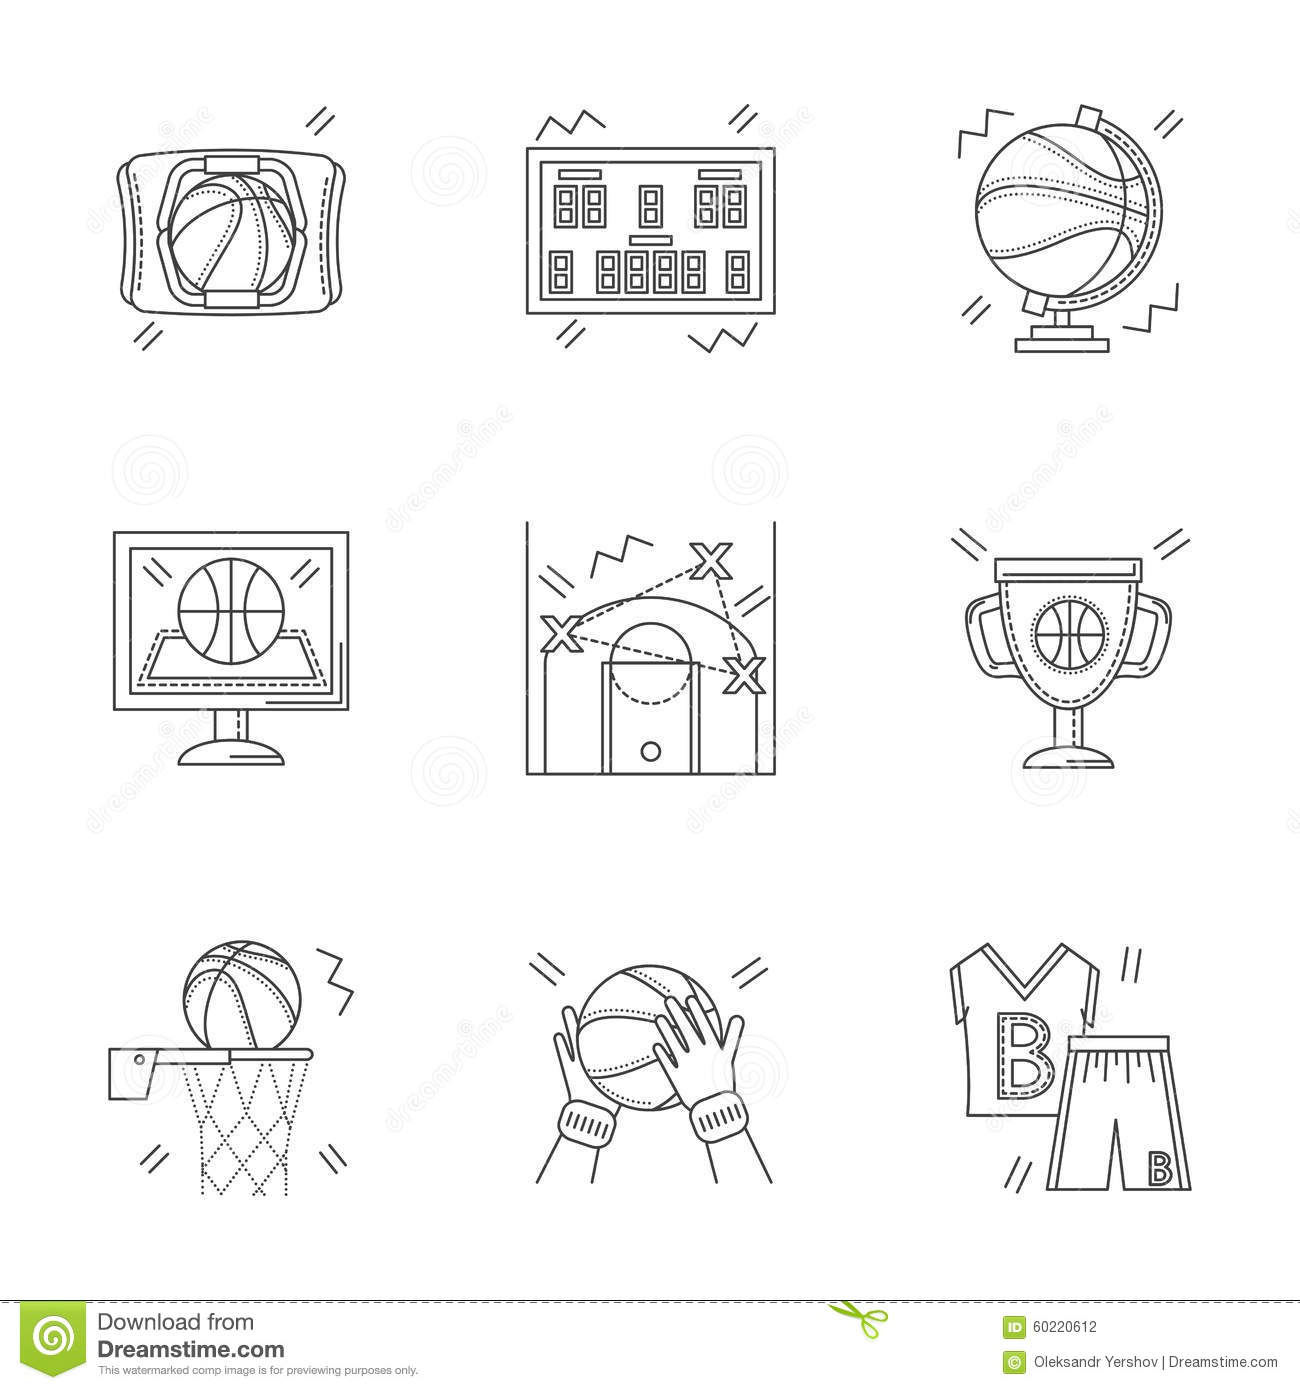 Linear icons for basketball stock illustration illustration of linear icons for basketball biocorpaavc Choice Image